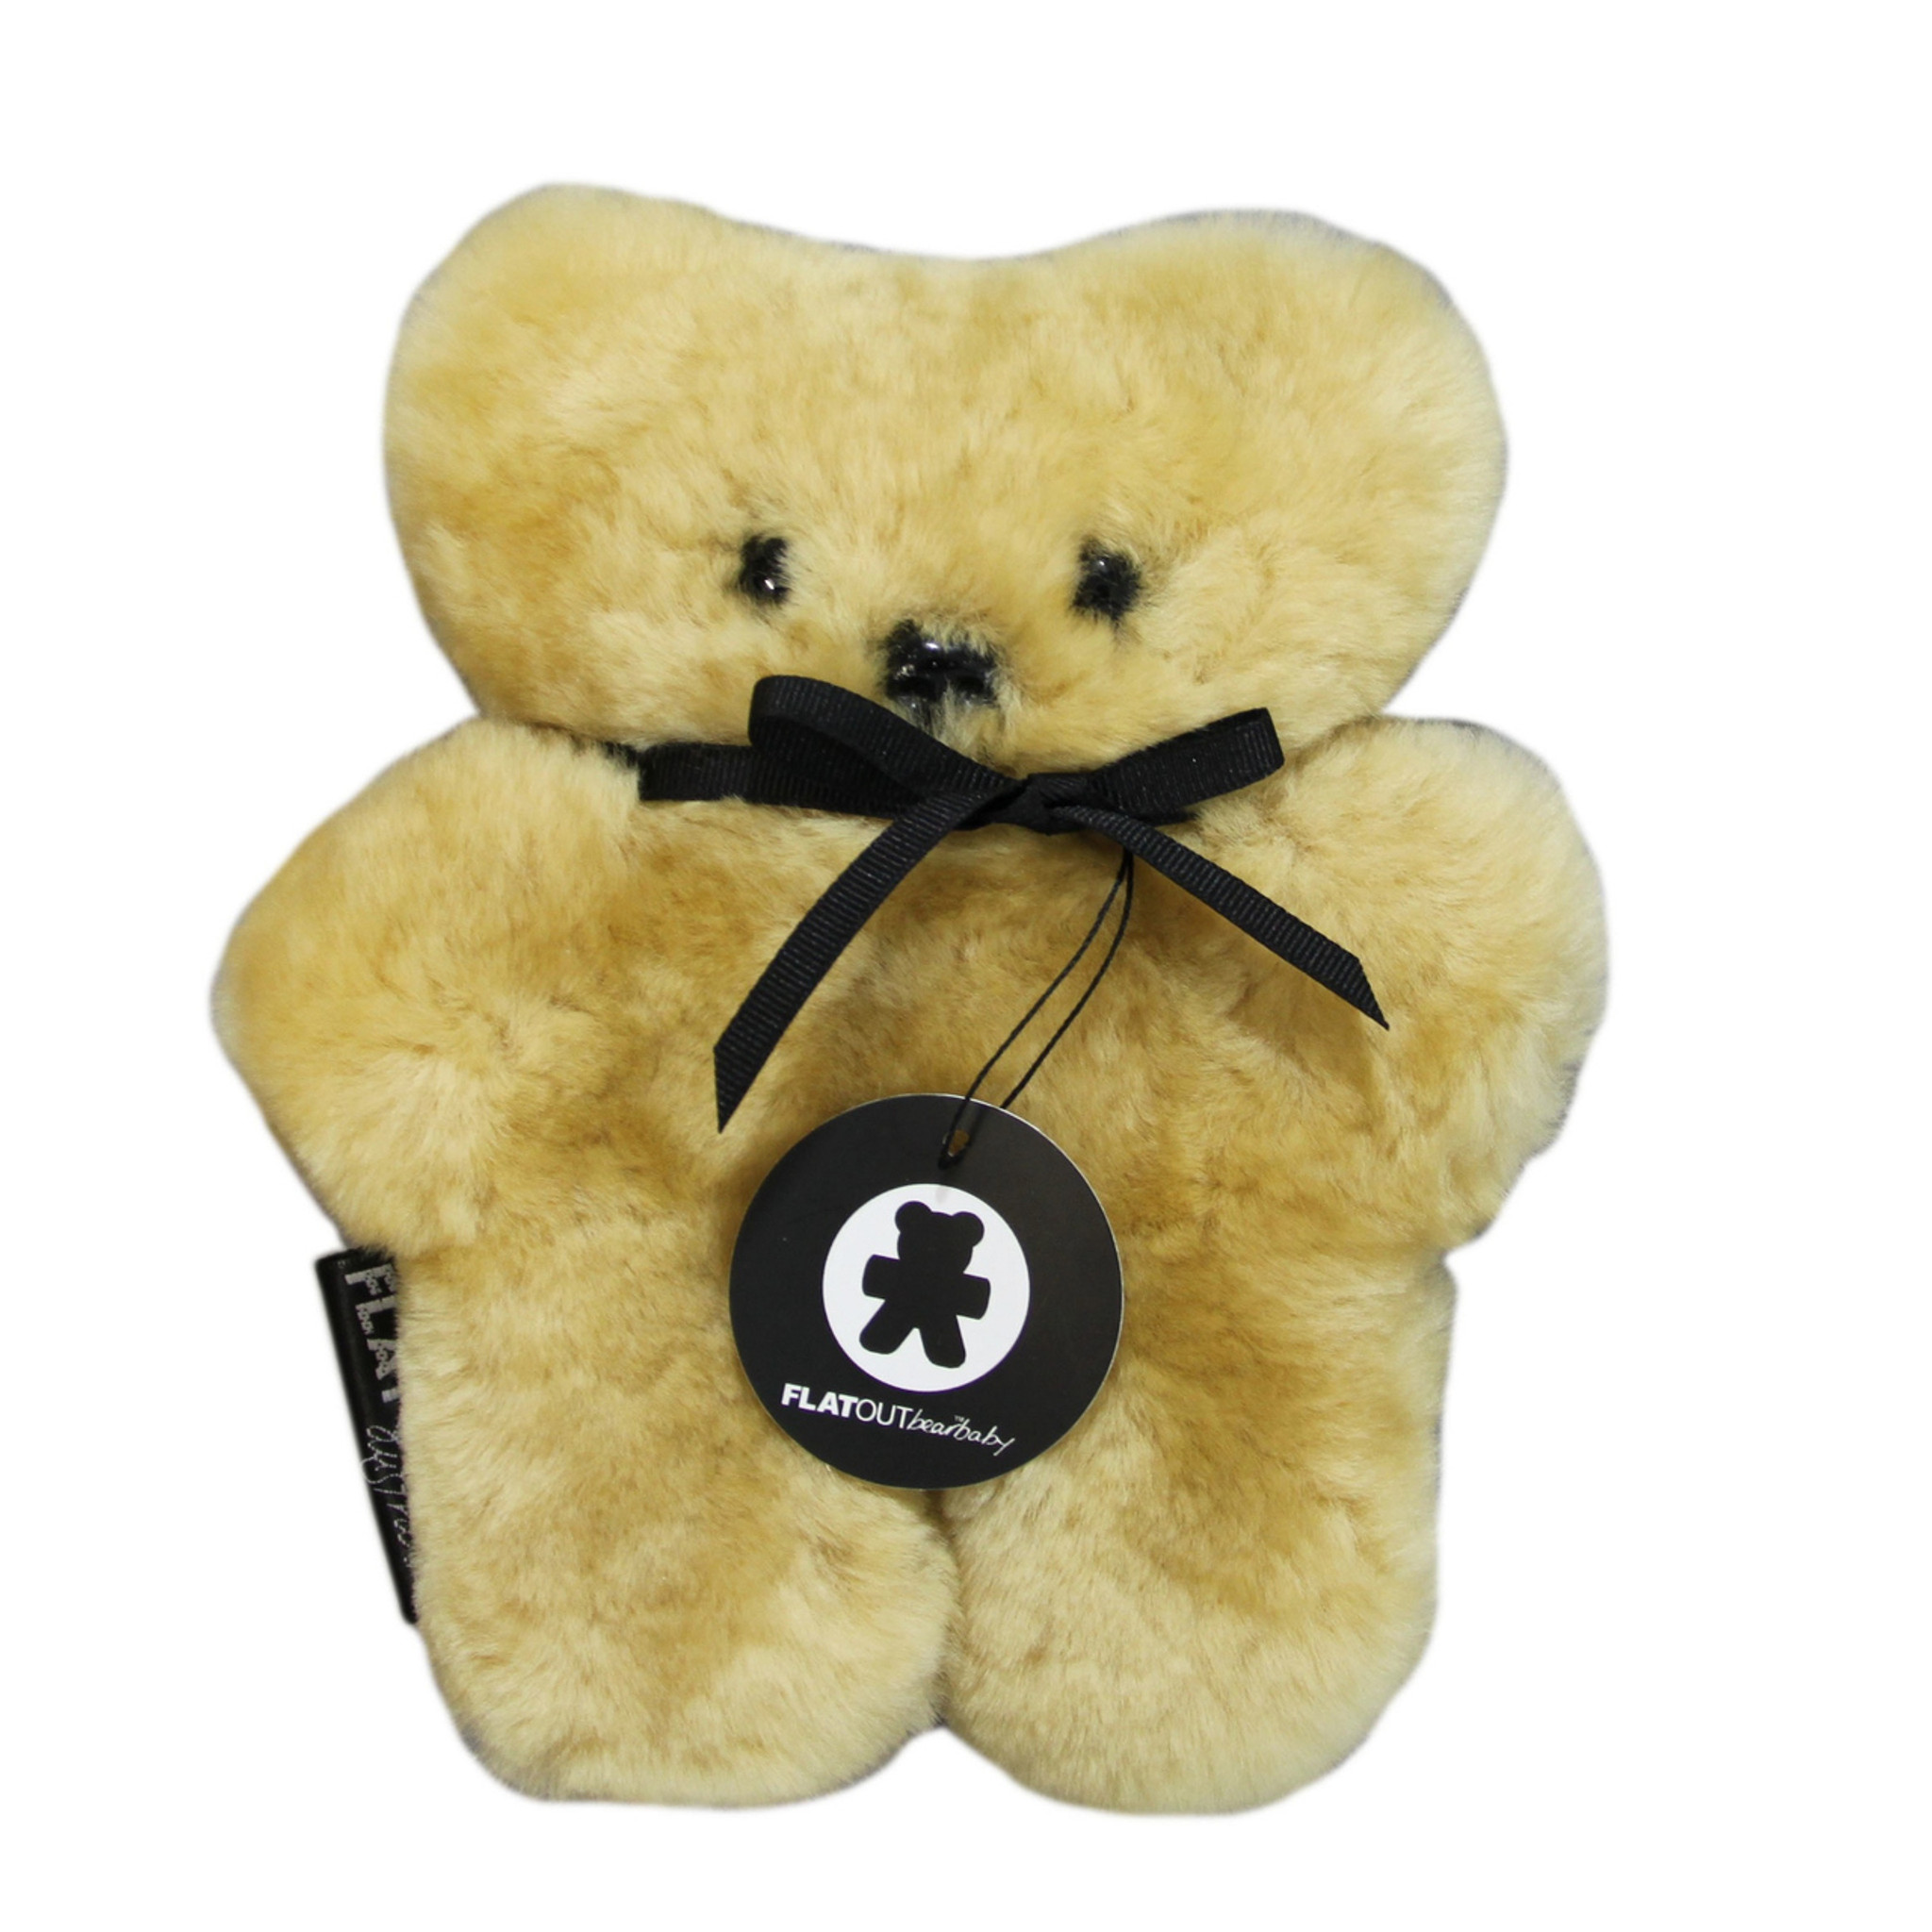 Australian Made Teddy Bears Sheepskin Teddy Bears I Flatout Bears Are A Winner I Free P Andp